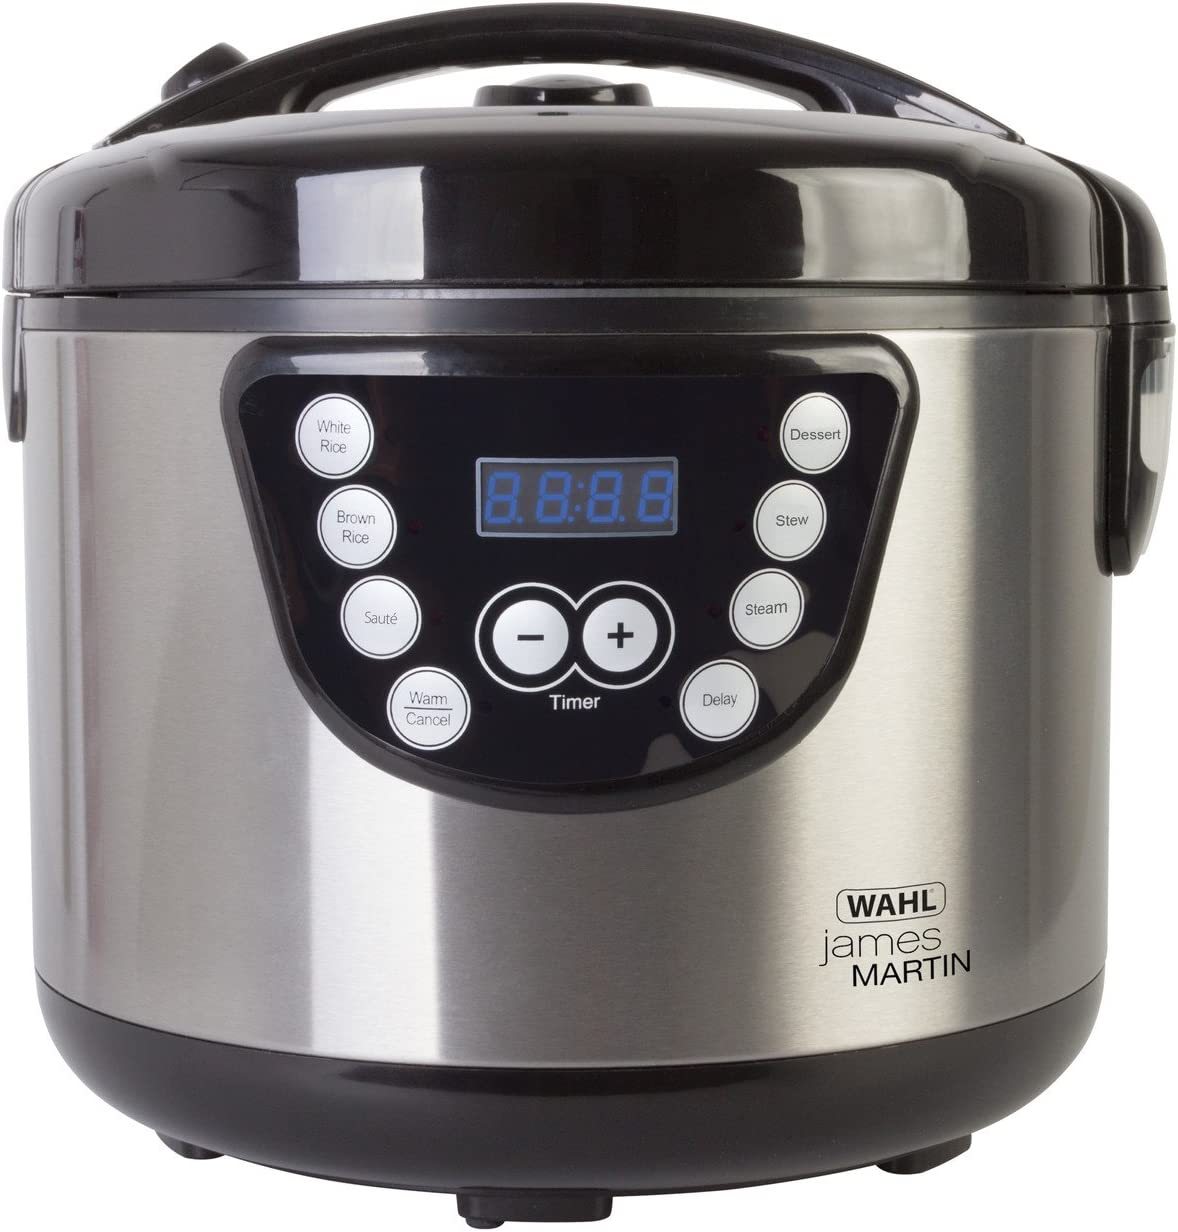 Wahl ZX916 James Martin Multi Cooker, Steaming, Sautéing, Stewing, Cooking, 24 hrs delay timer, Family sized 4L Capacity, Stainless Steel, 2.68 Kgs, Dishwasher Safe parts